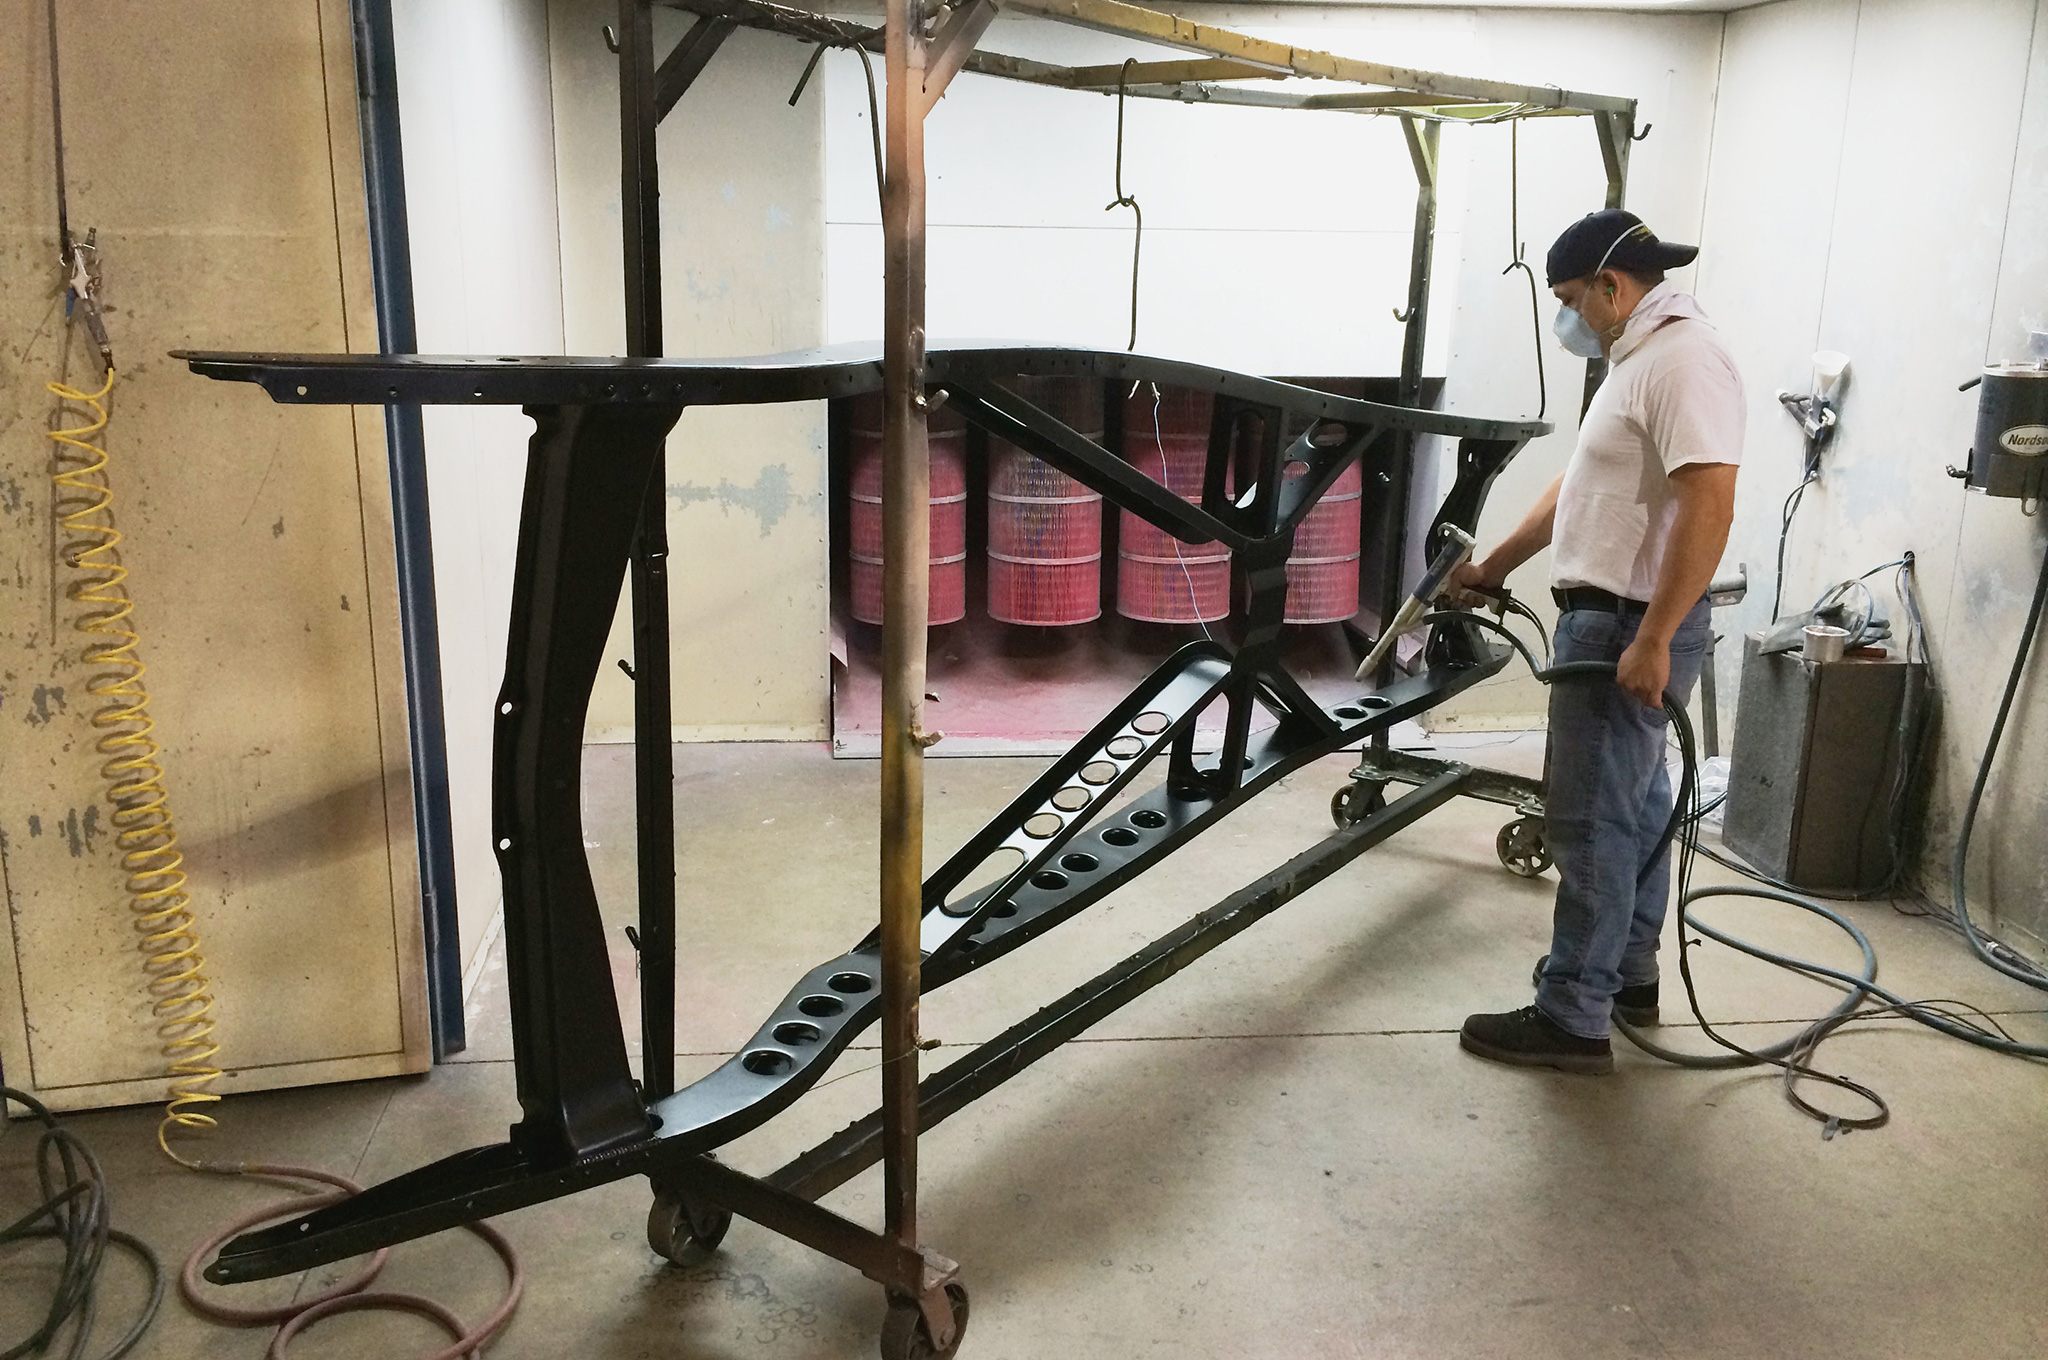 To prevent any rust from grabbing hold of the fresh metal, the frame received a quick powdercoating at Eddie Motorsports in Southern California. They coated the frame in a satin black—not too glossy and not too flat.